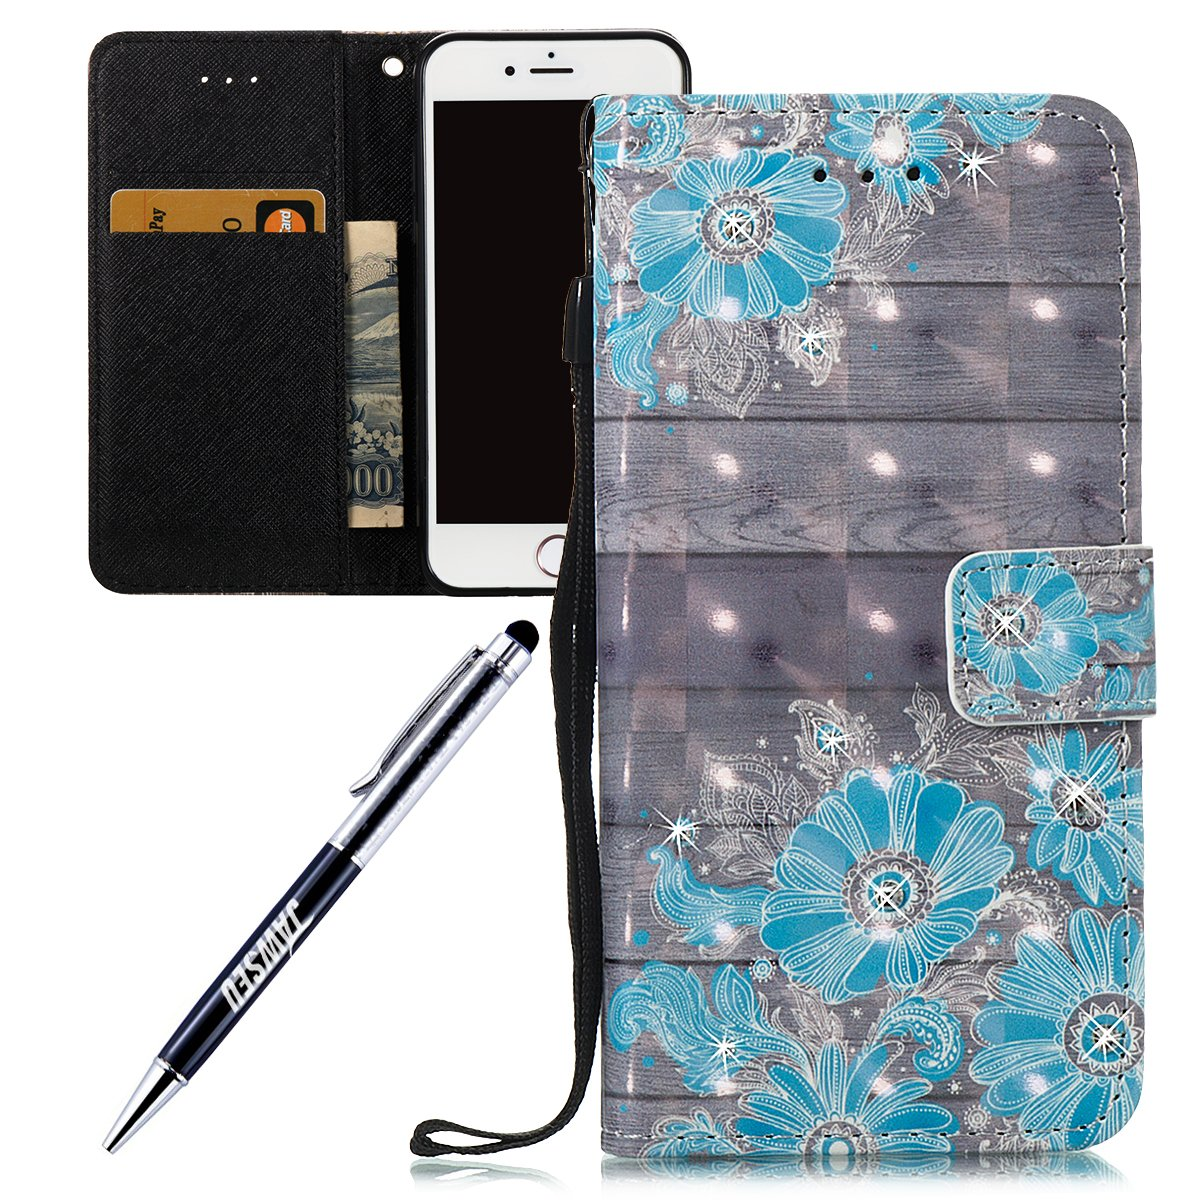 iPhone 6 Plus 5.5 Custodia, iPhone 6S Plus Cover, JAWSEU iPhone 6/6S Plus Custodia Pelle Portafoglio Diamante Lusso 3D Modello Design Creativo PU Leather Wallet Flip Cover Custodia per iPhone 6 Plus /6S Plus Copertura con Morbida Gel Silicone Case e Porta